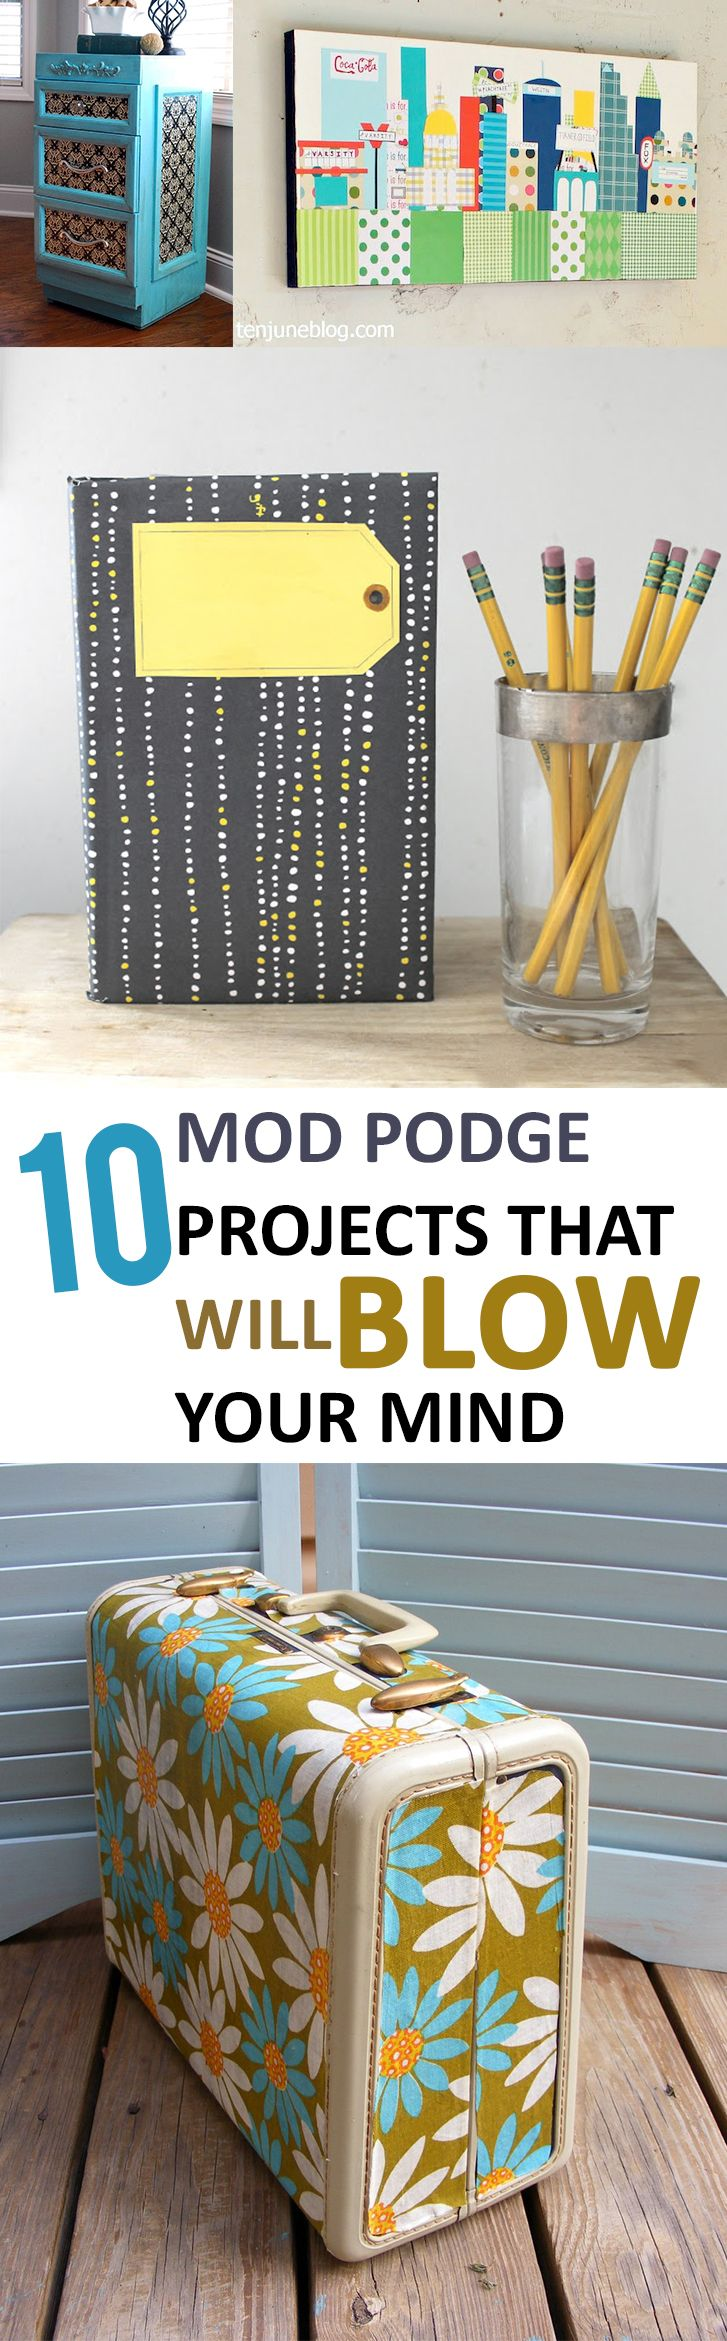 10 Mod Podge Projects that Will Blow Your Mind-Mod Podge is kind of like…